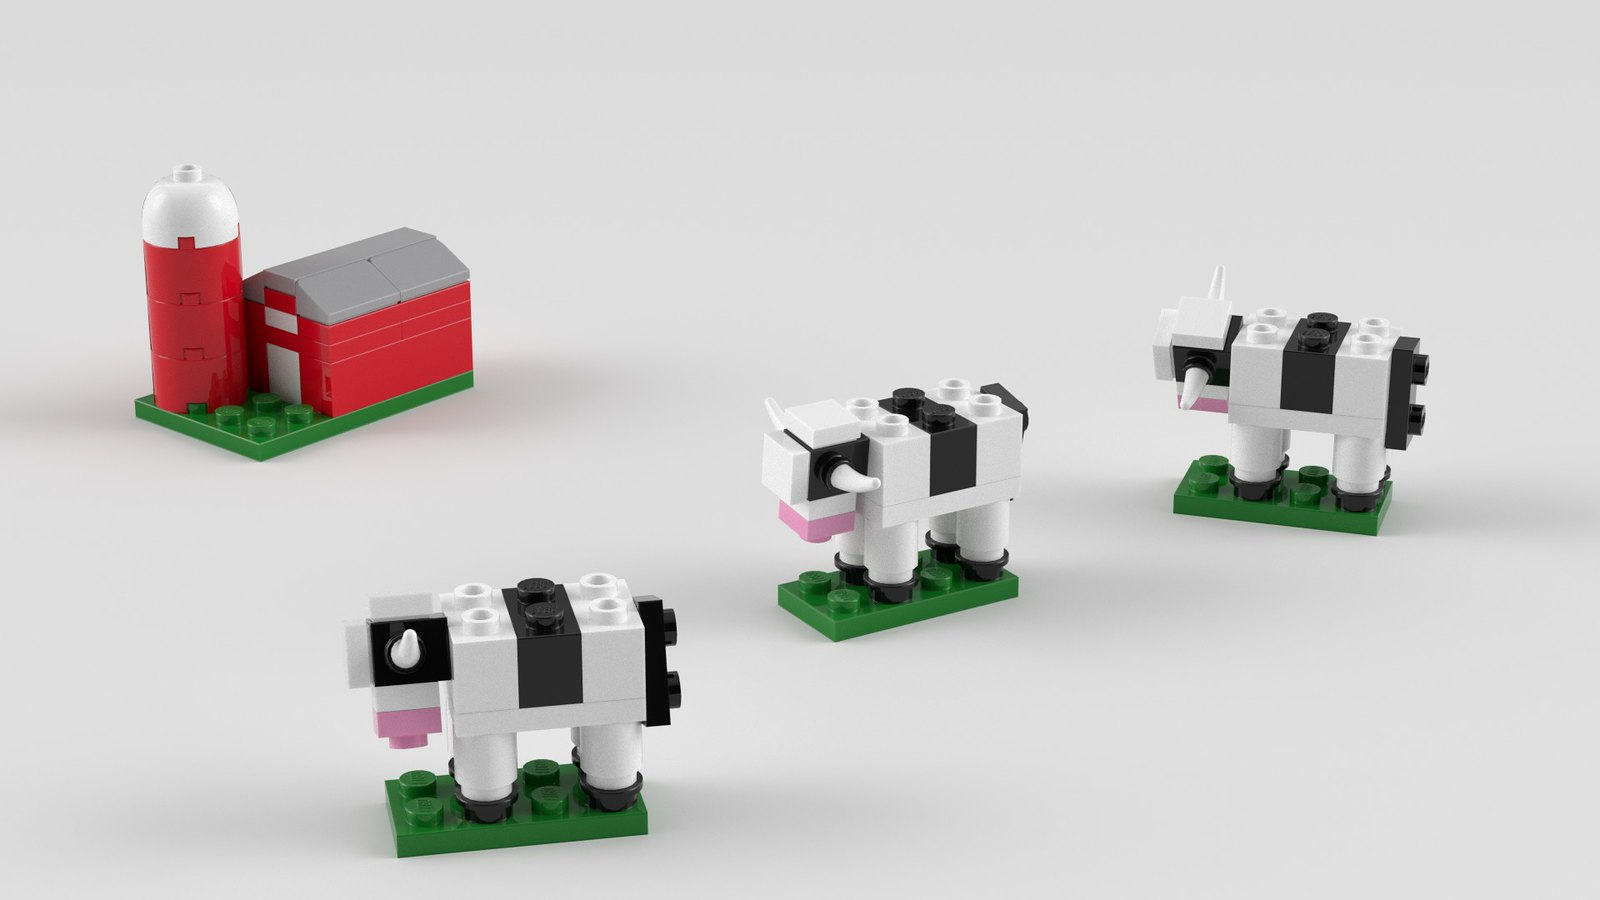 Can I Get A Lego Moo Cows And Barn Reids For Fun